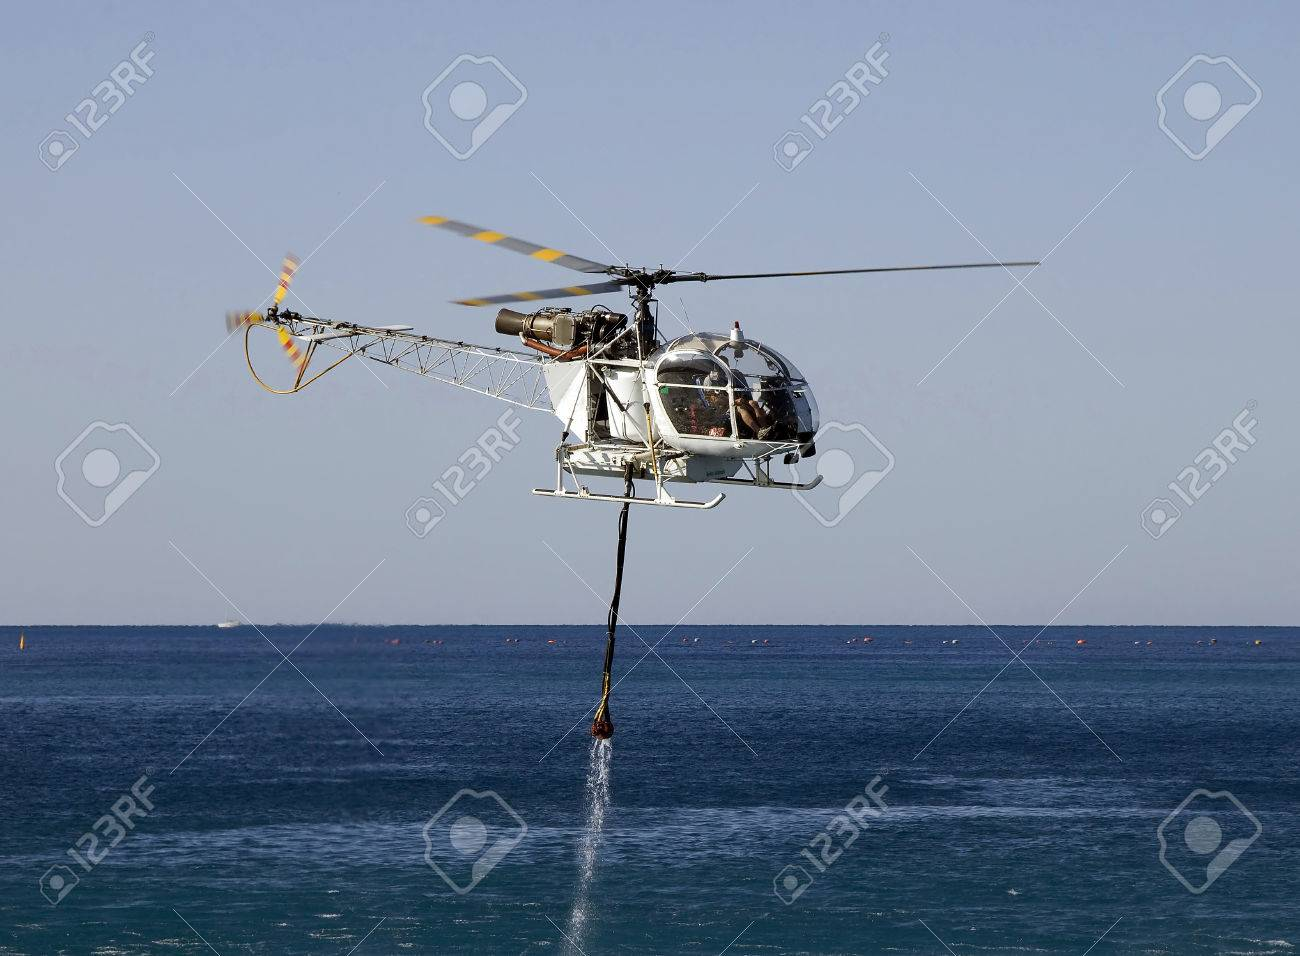 FIRE FIGHT HELICOPTER WITH WATER BUCKET AT SEA - 32203624